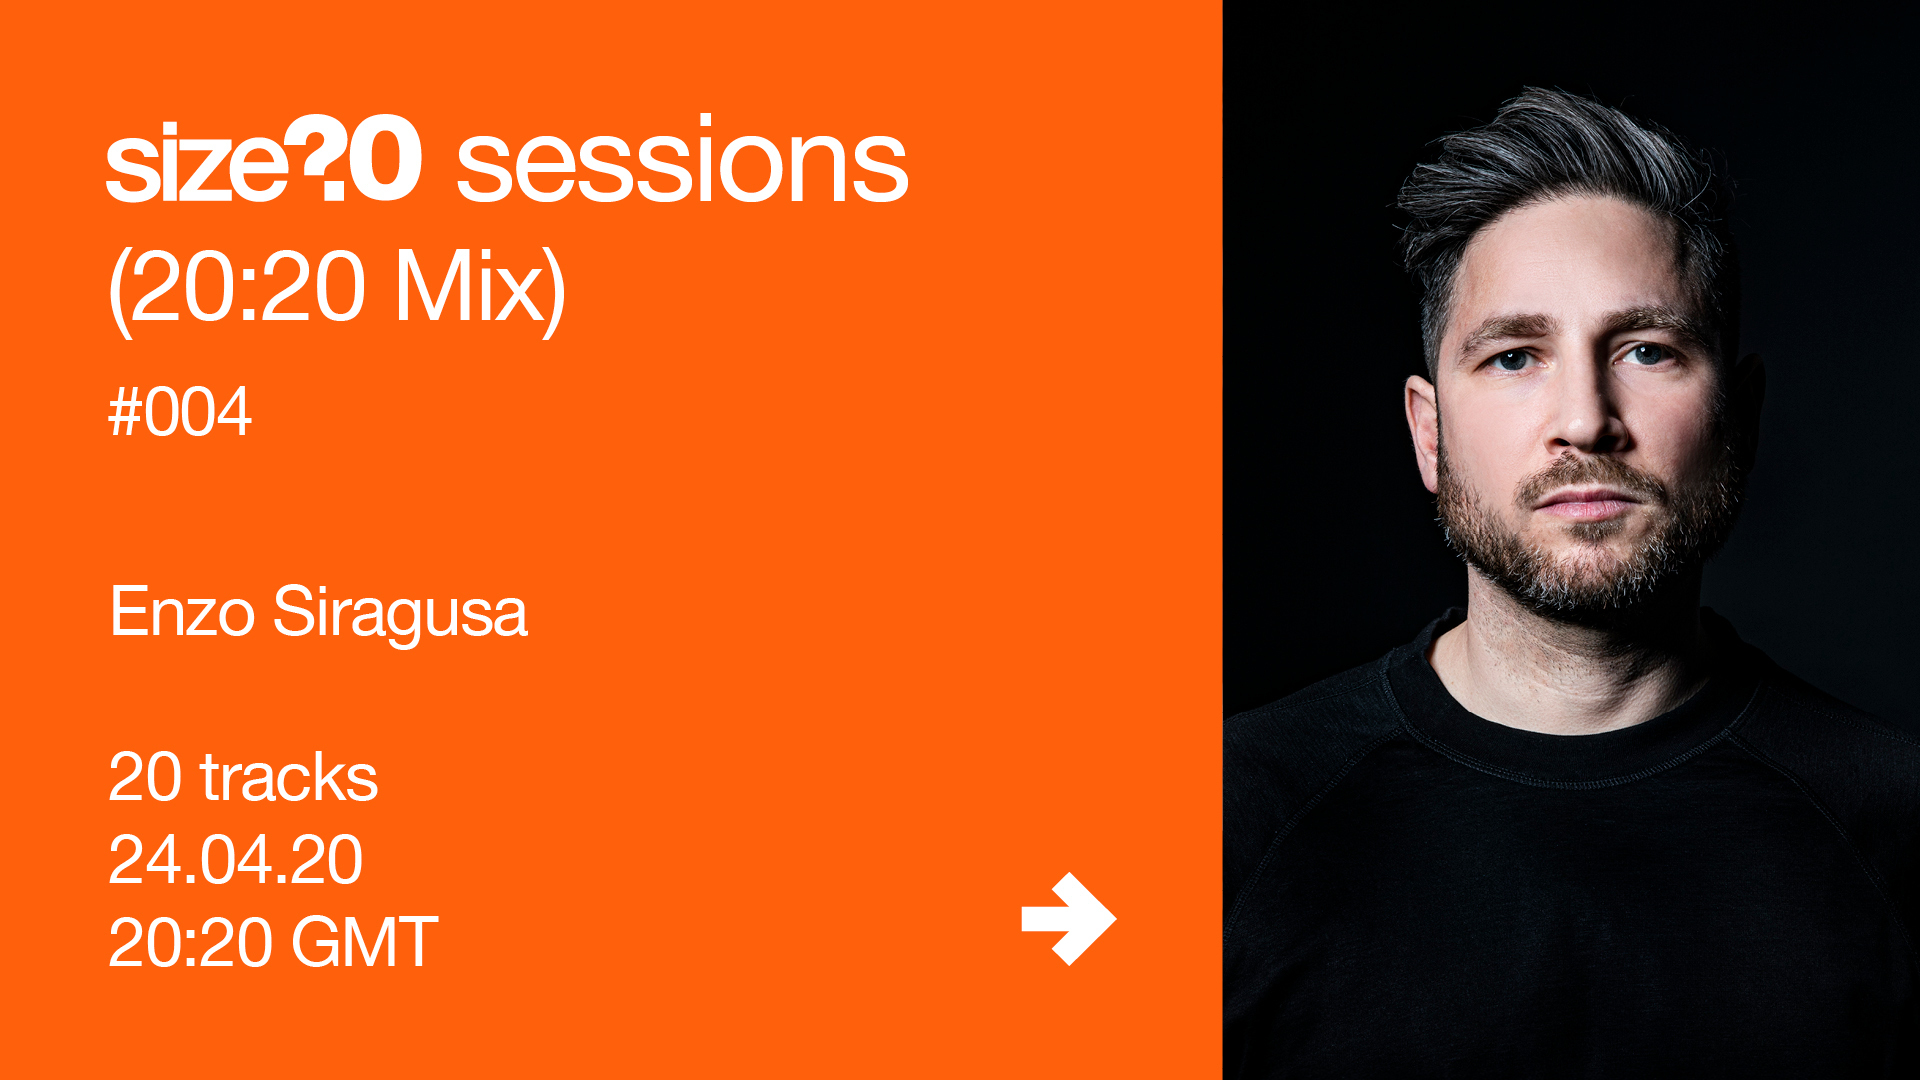 Enzo Siragusa size? sessions (20:20 Mix)